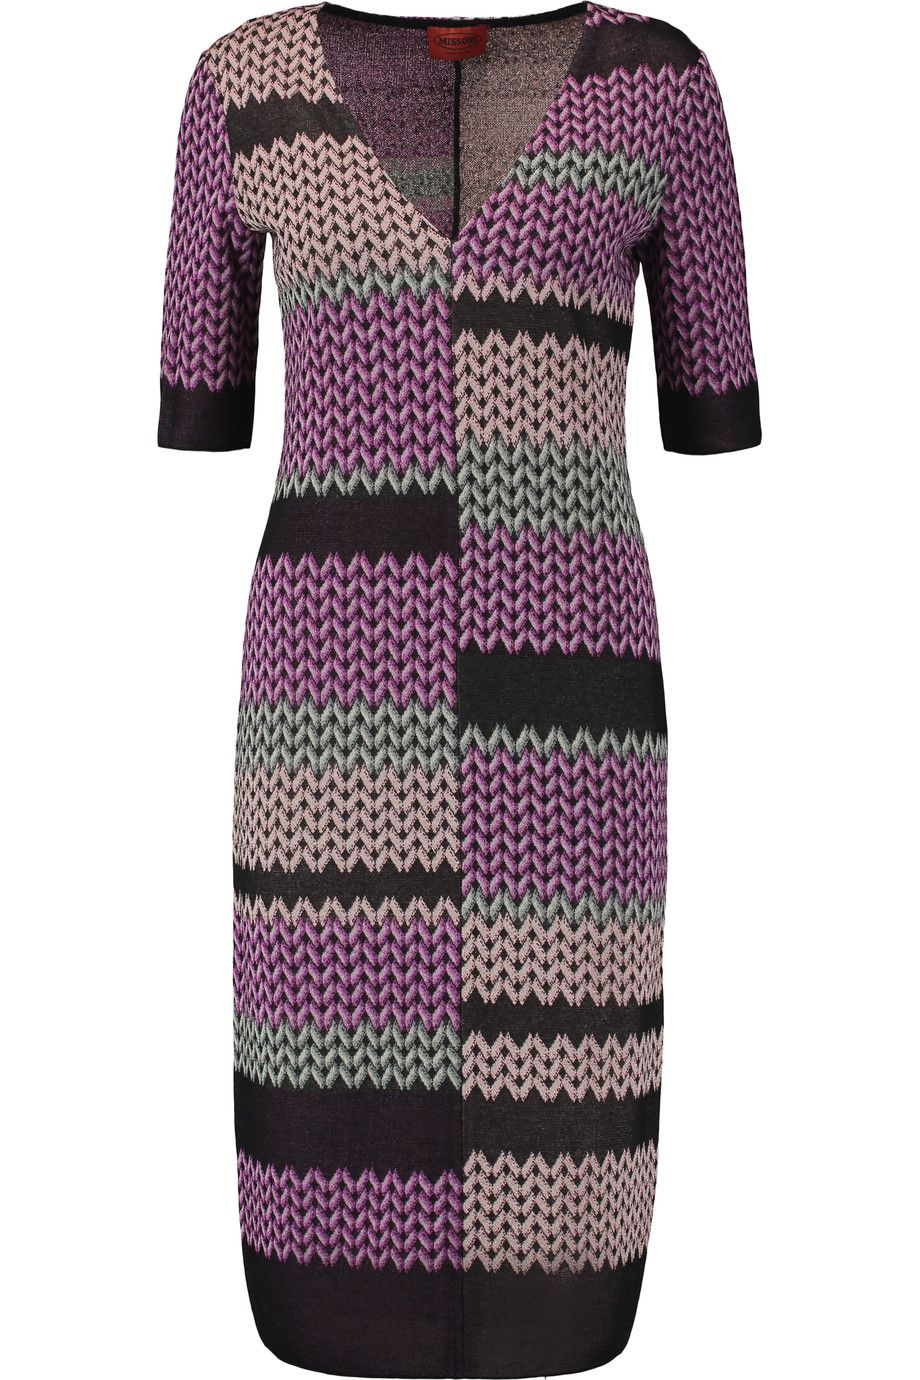 Missoni crochet knit dress missoni cloth dress missoni missoni crochet knit dress missoni cloth dress dt1010fo